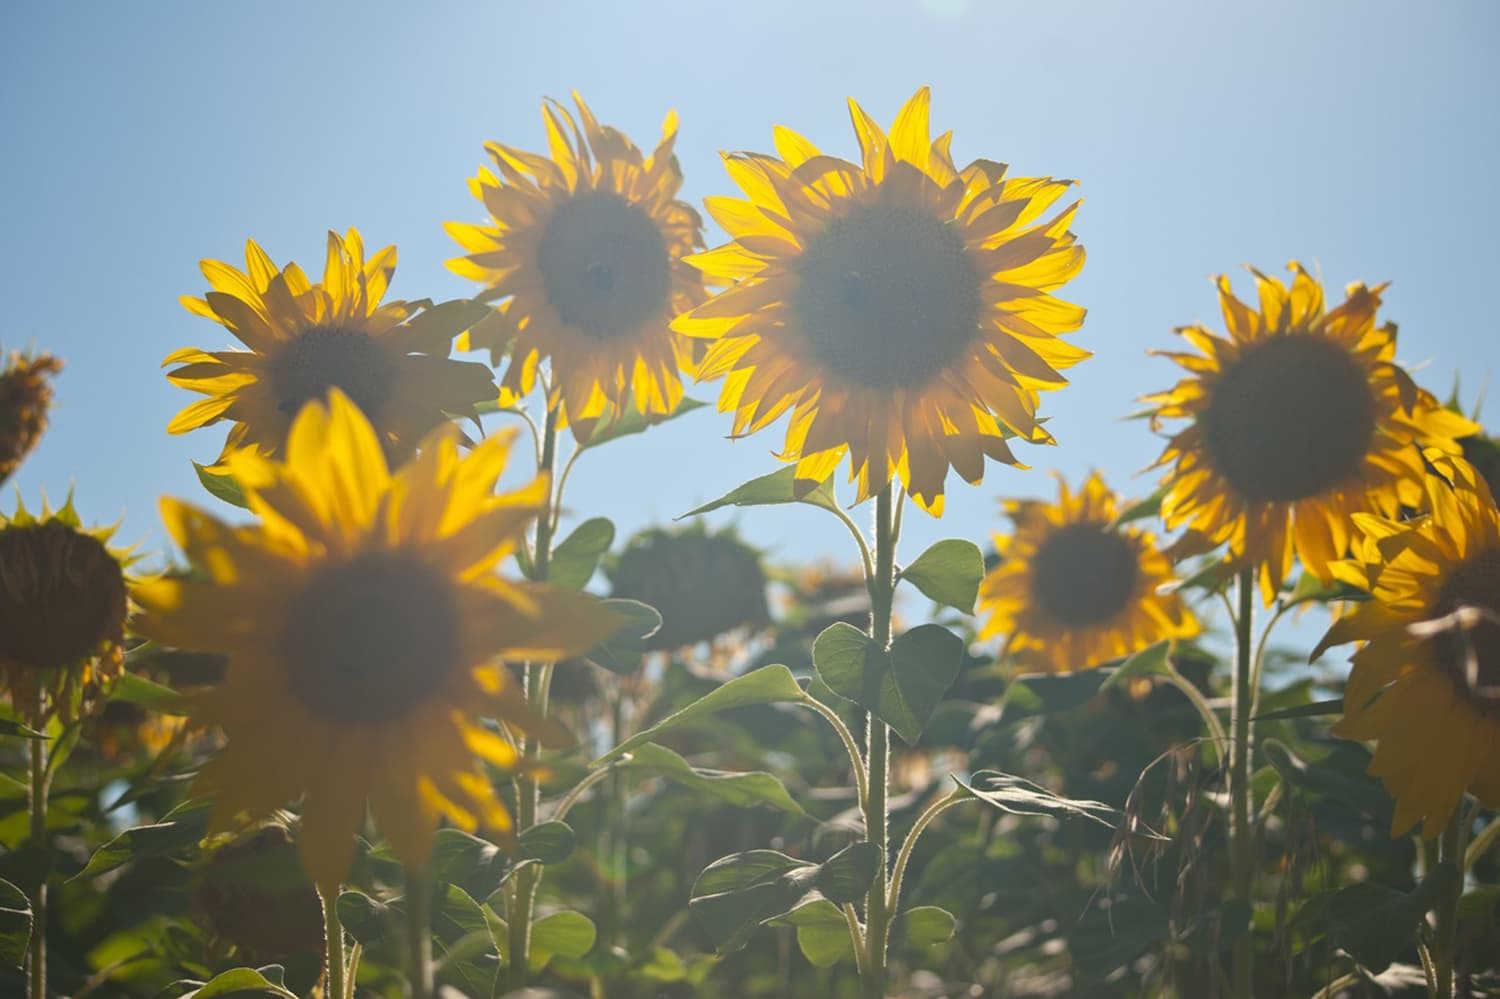 Sunflowers in South West France